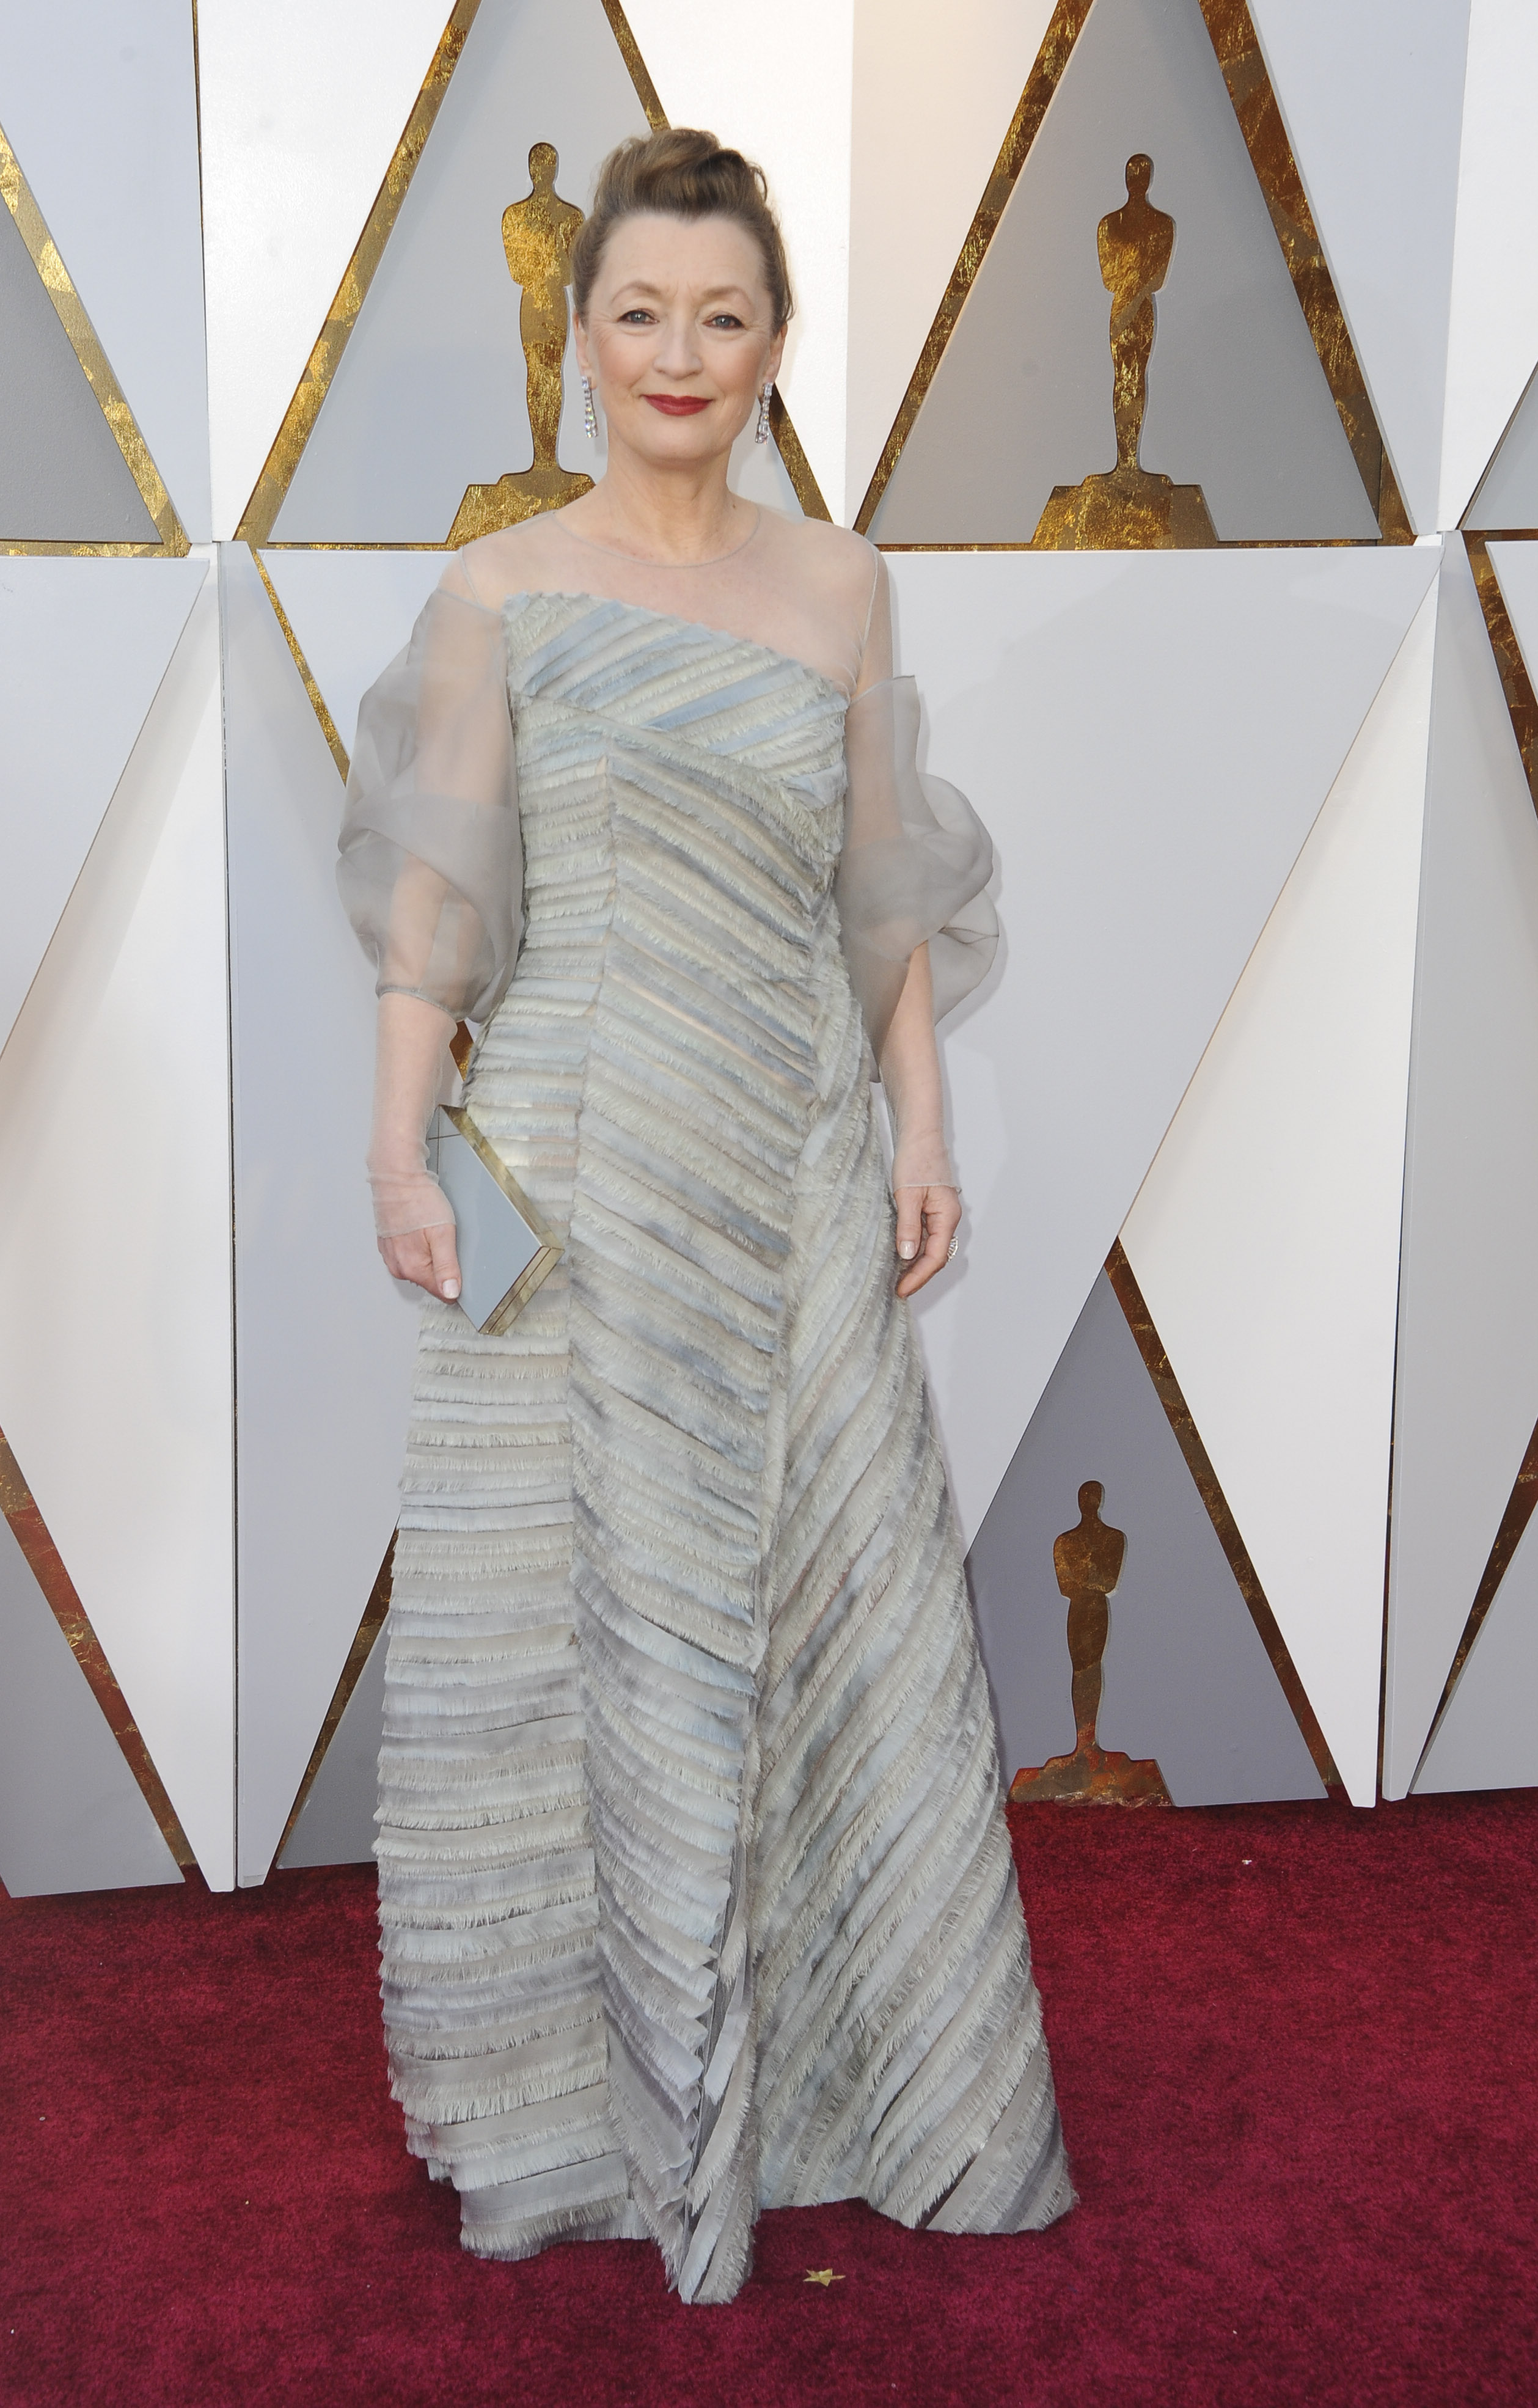 Lesley Manville arrives at the 90th Annual Academy Awards (Oscars) held at the Dolby Theater in Hollywood, California. (Image: Apega/WENN.com)<p></p>